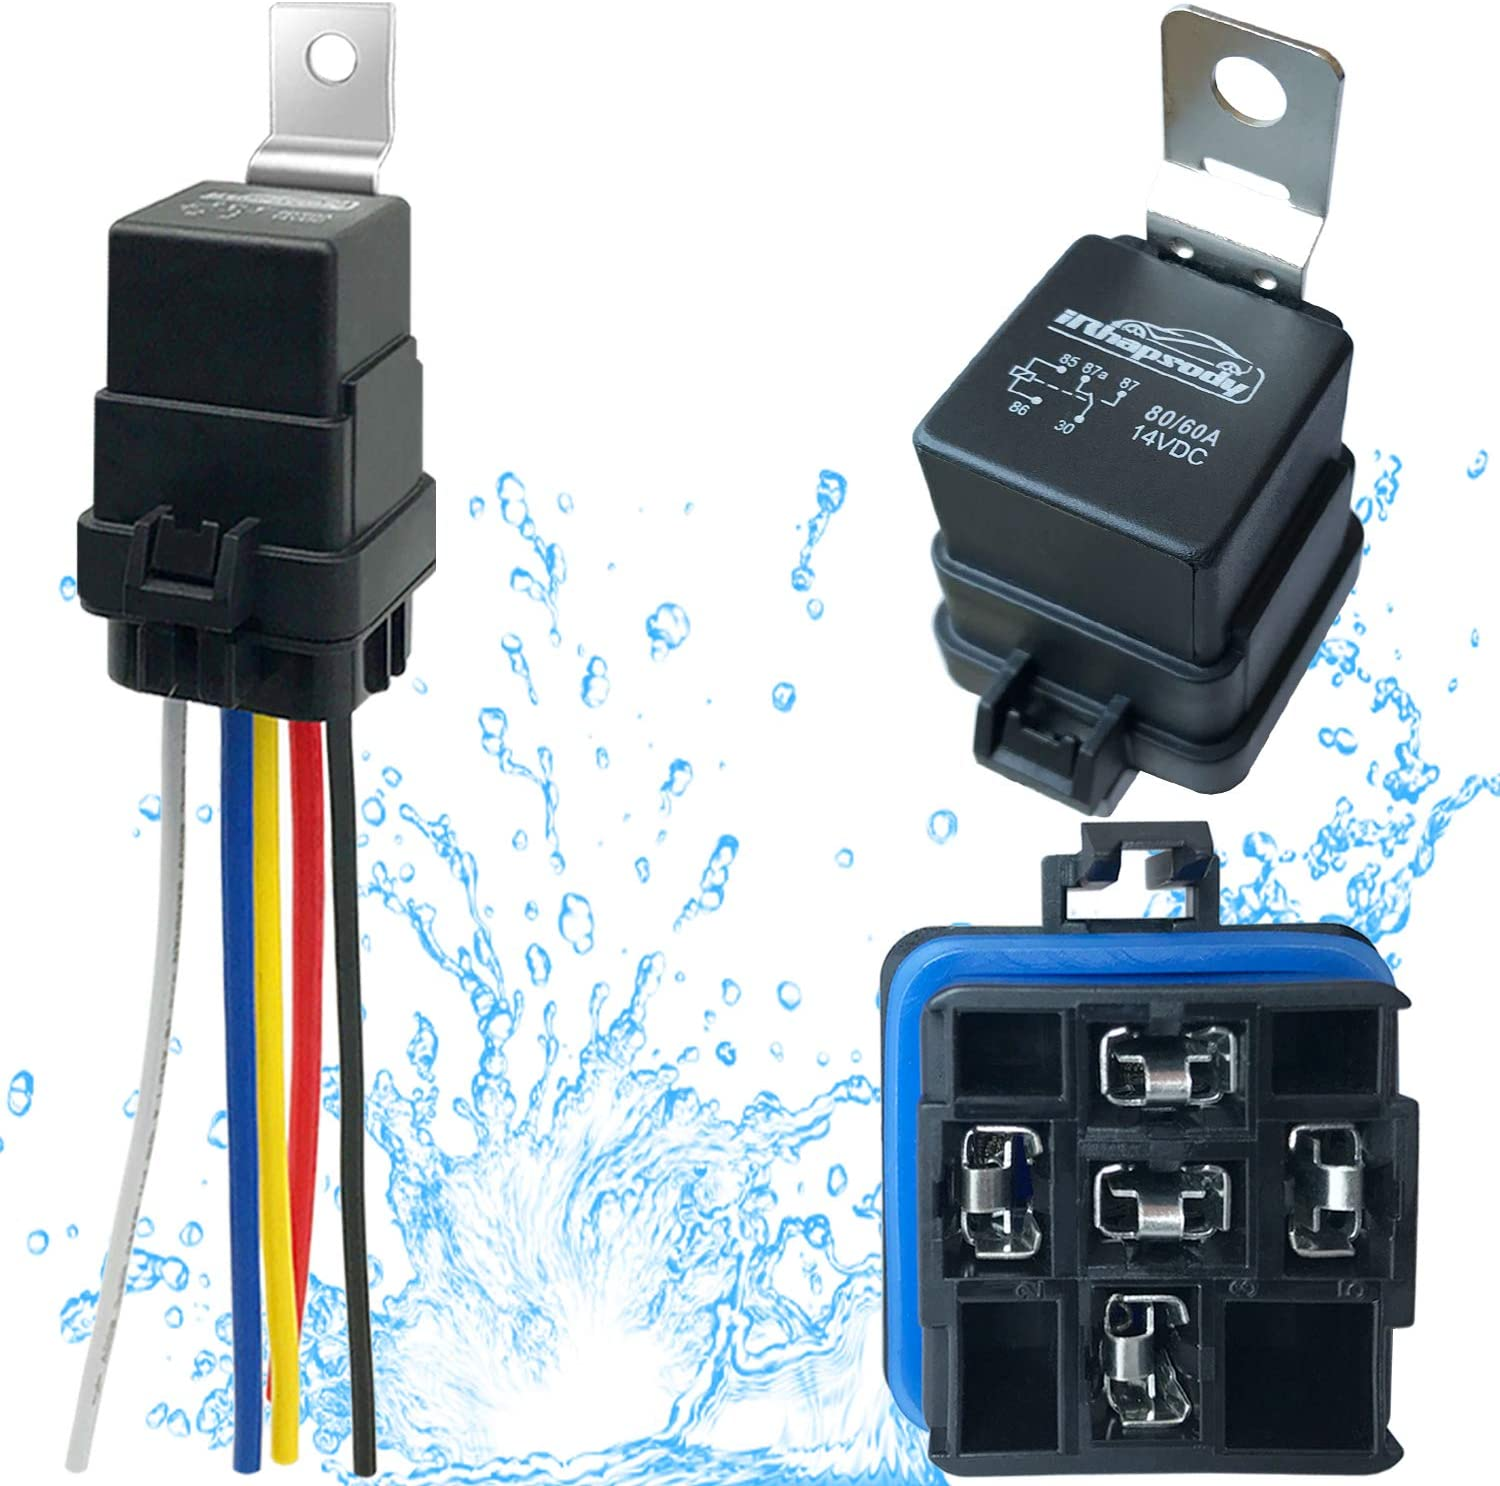 IRHAPSODY 1 PACK 80/60 AMP Waterproof Relay and Harness - Heavy Duty 12 AWG Wires, 12 V DC 5-PIN SPDT Bosch Style Automotive Relay